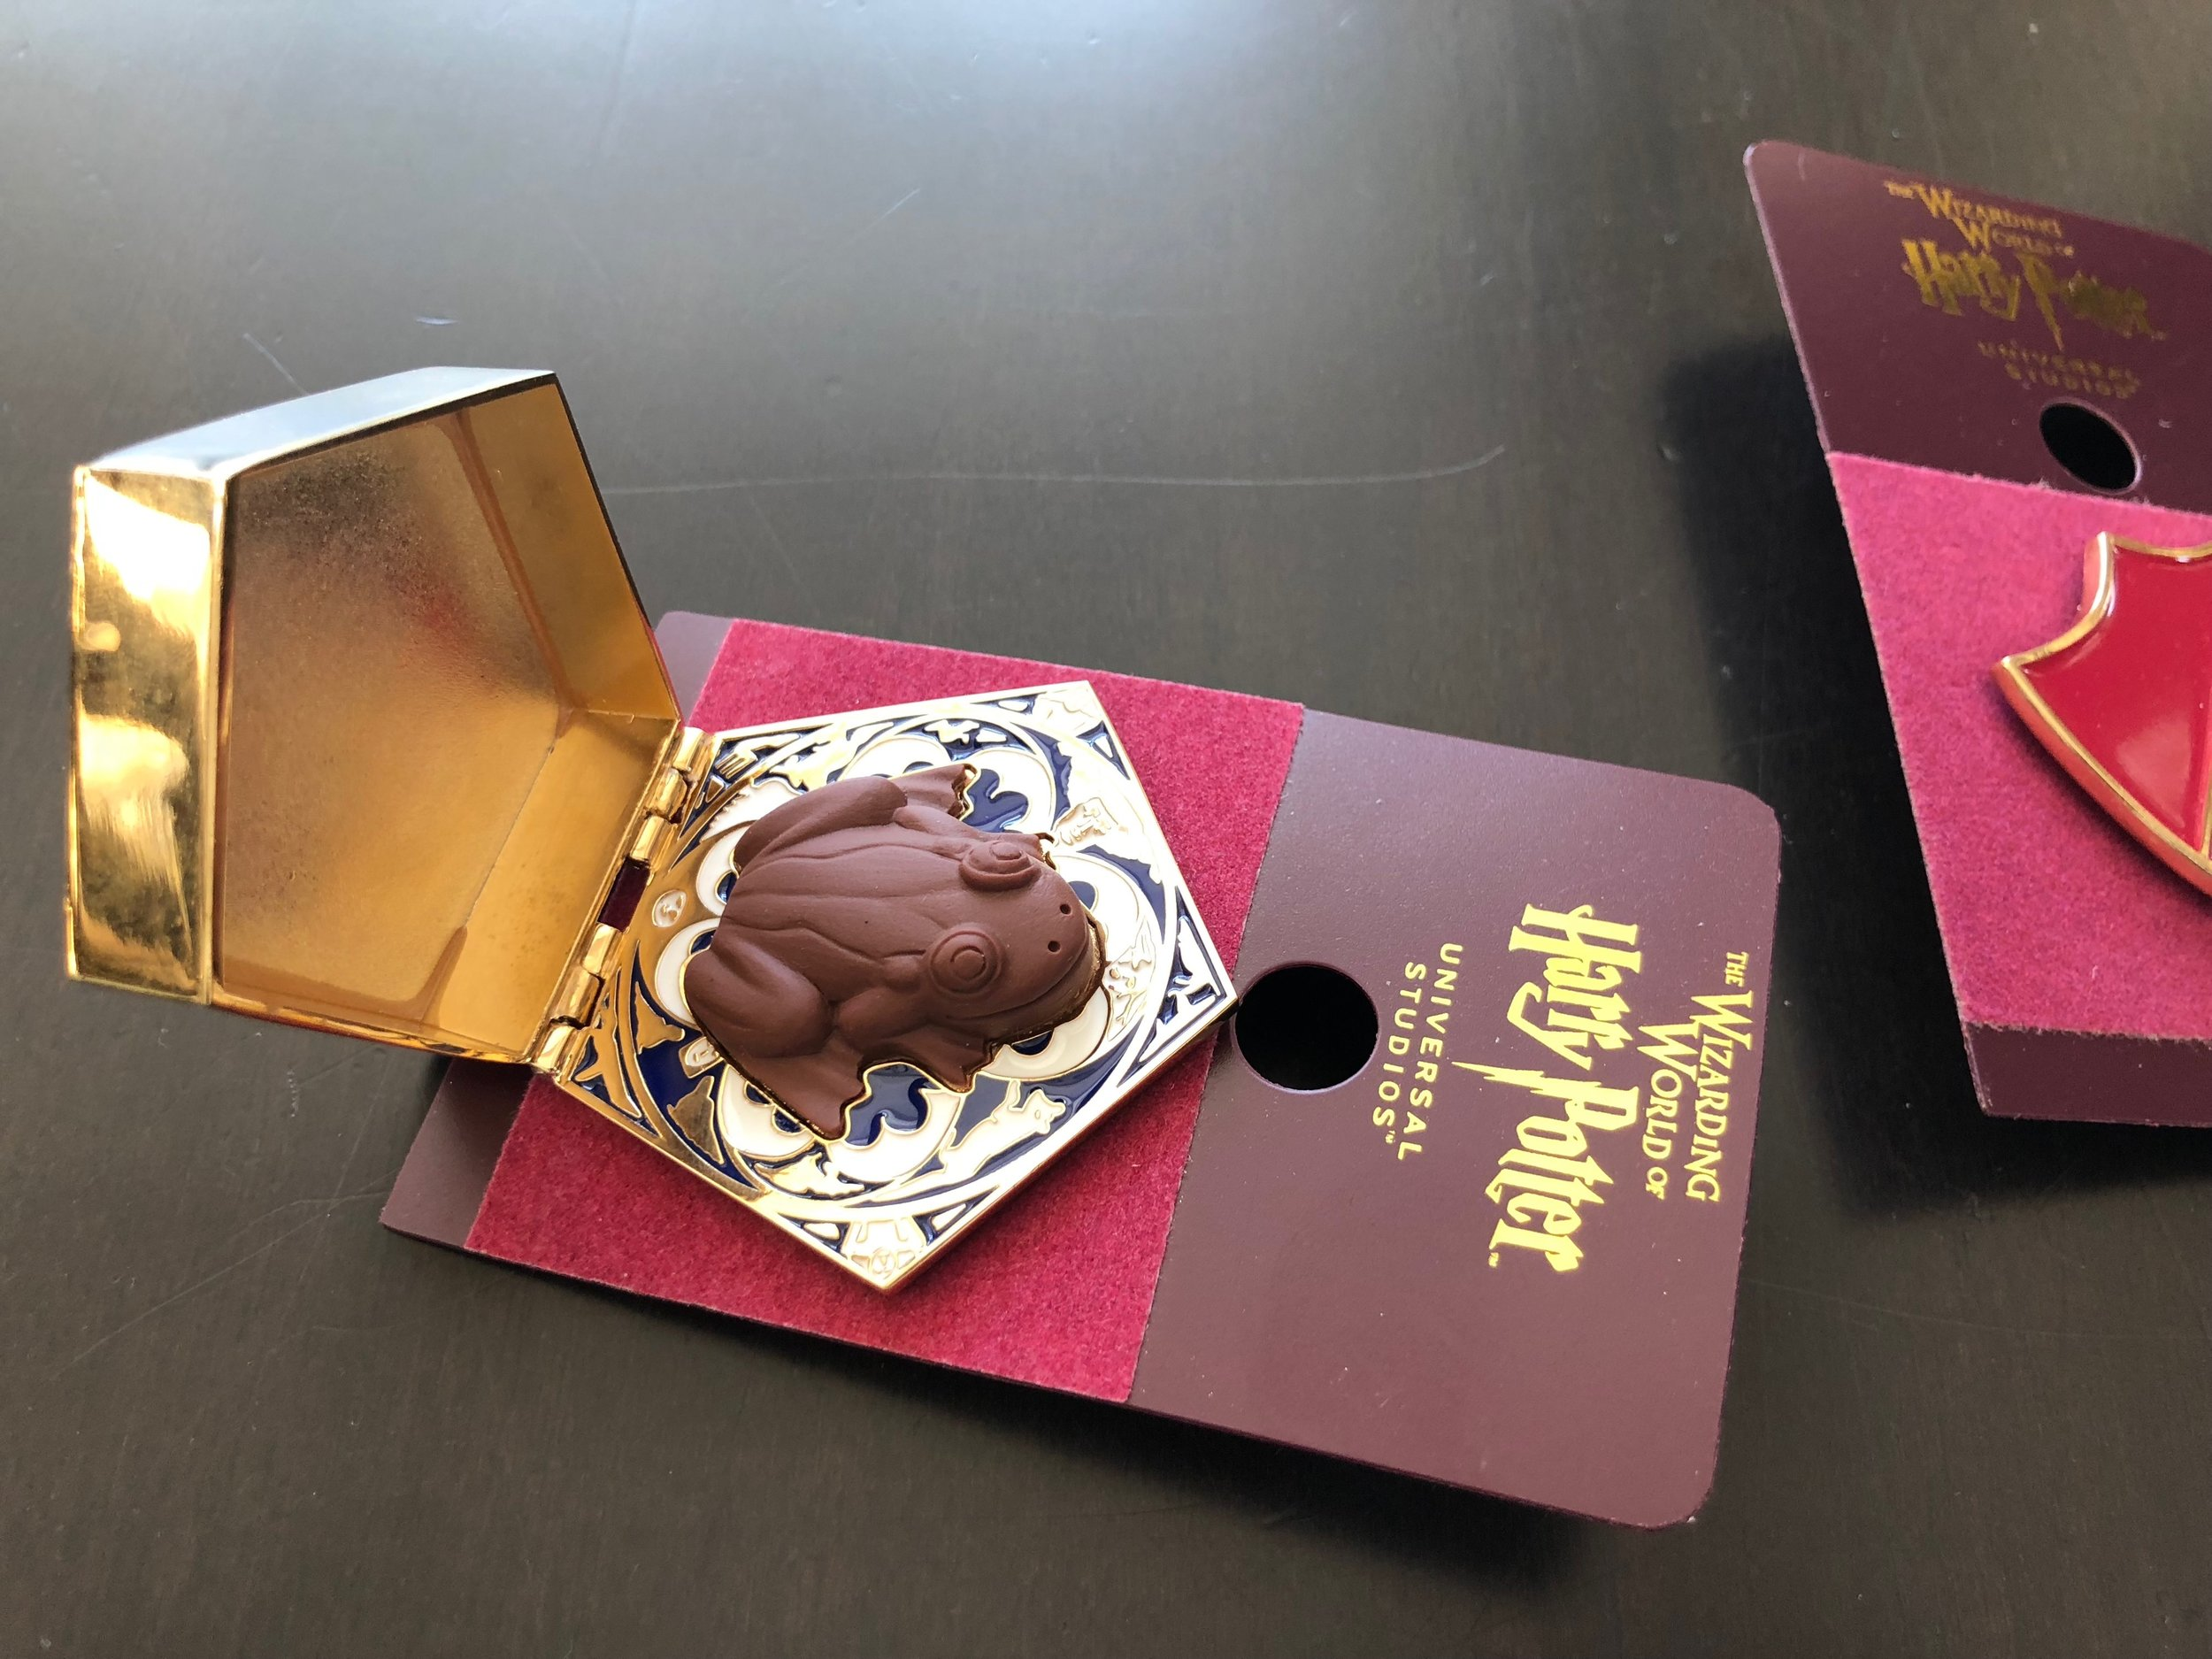 The chocolate frog even smells good! I made my daughter wait to give these to Sofia for her birthday (only a mere 7 weeks later). Souvenirs that double as a bday gift. Two birds, one stone = Cheapskate.